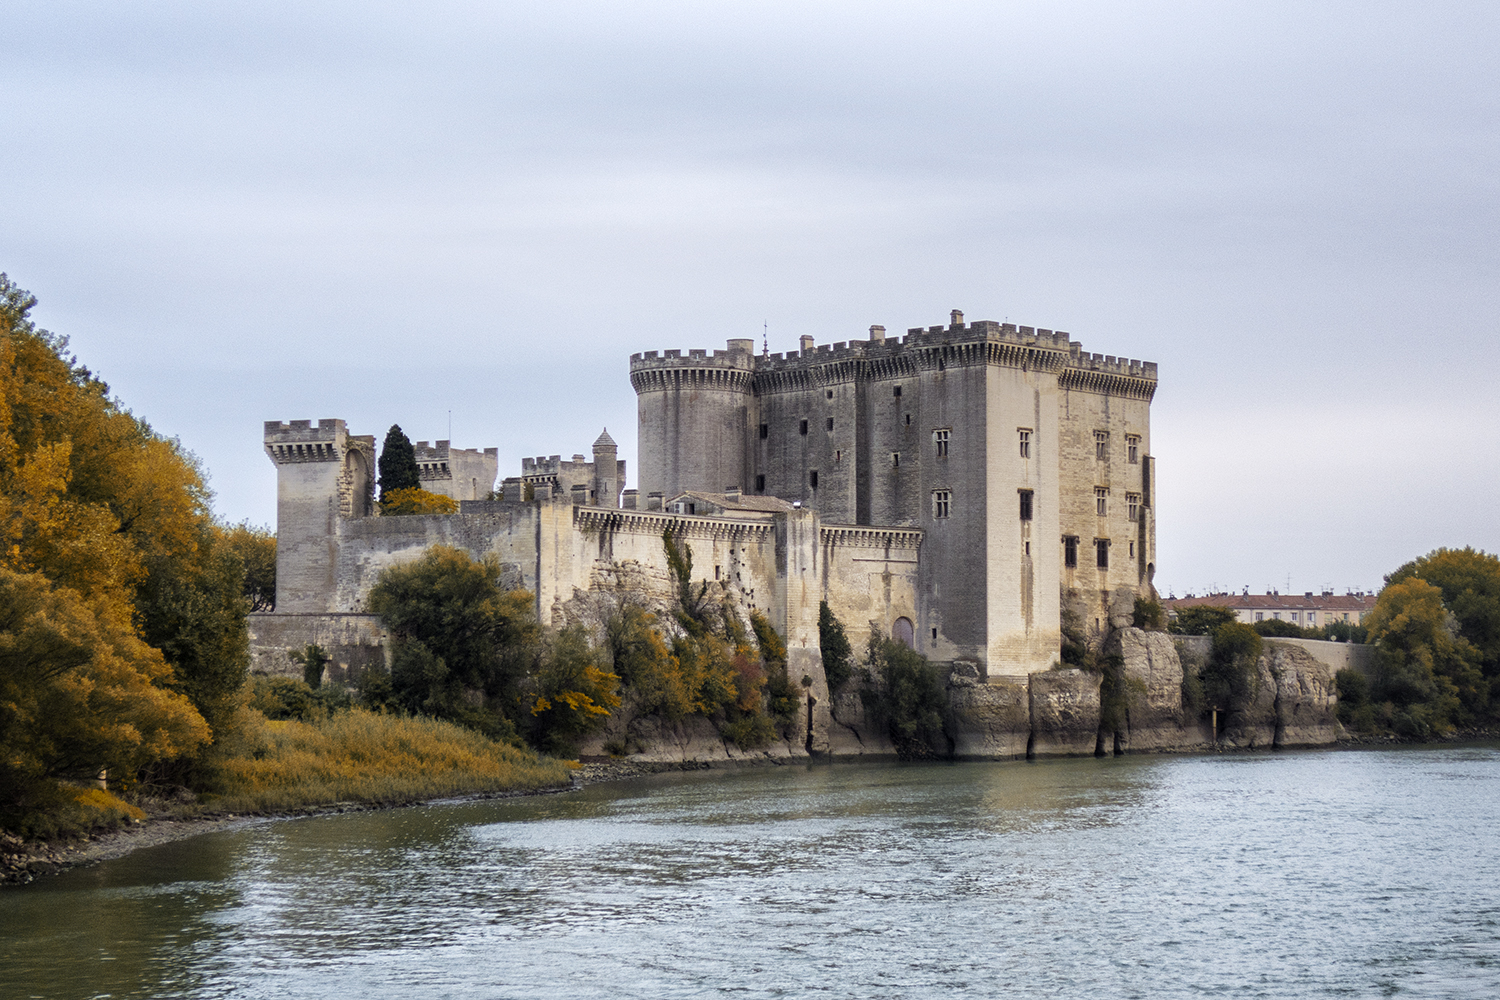 Along the Rhone River